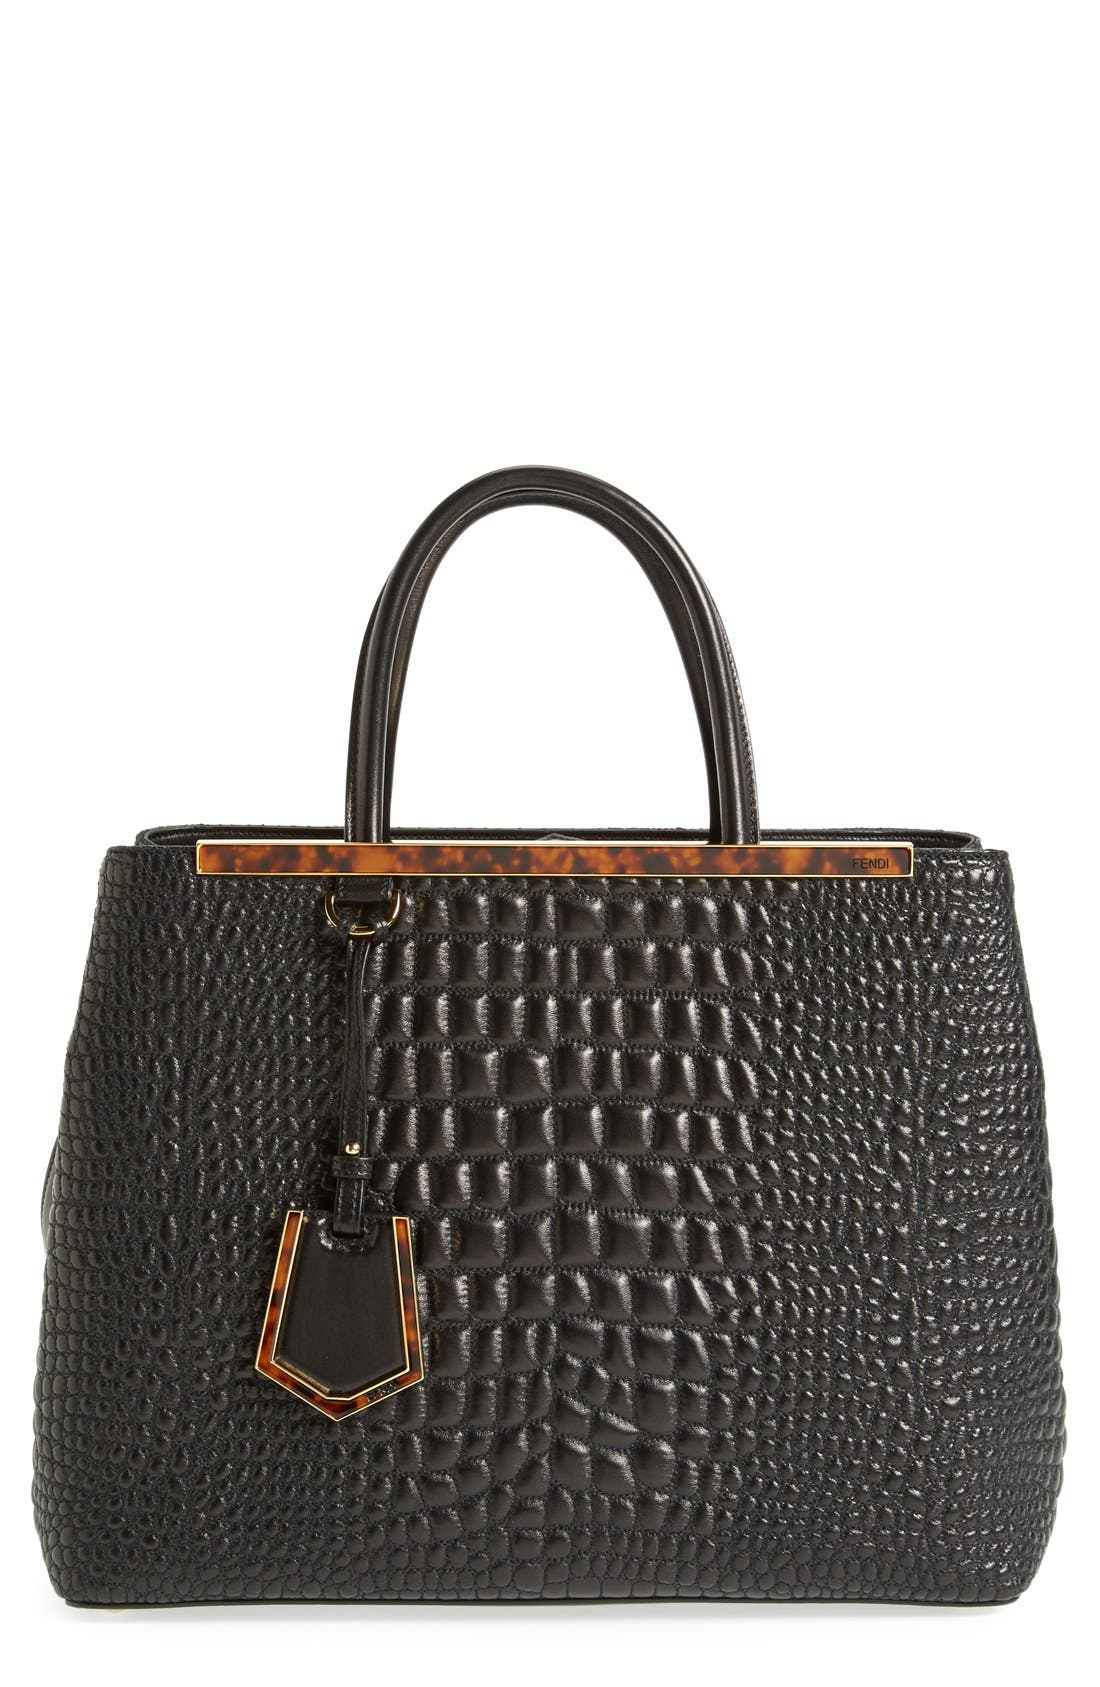 Alternate Image 1 Selected - Fendi 'Medium 2Jours' Croc Embroidered Leather Shopper